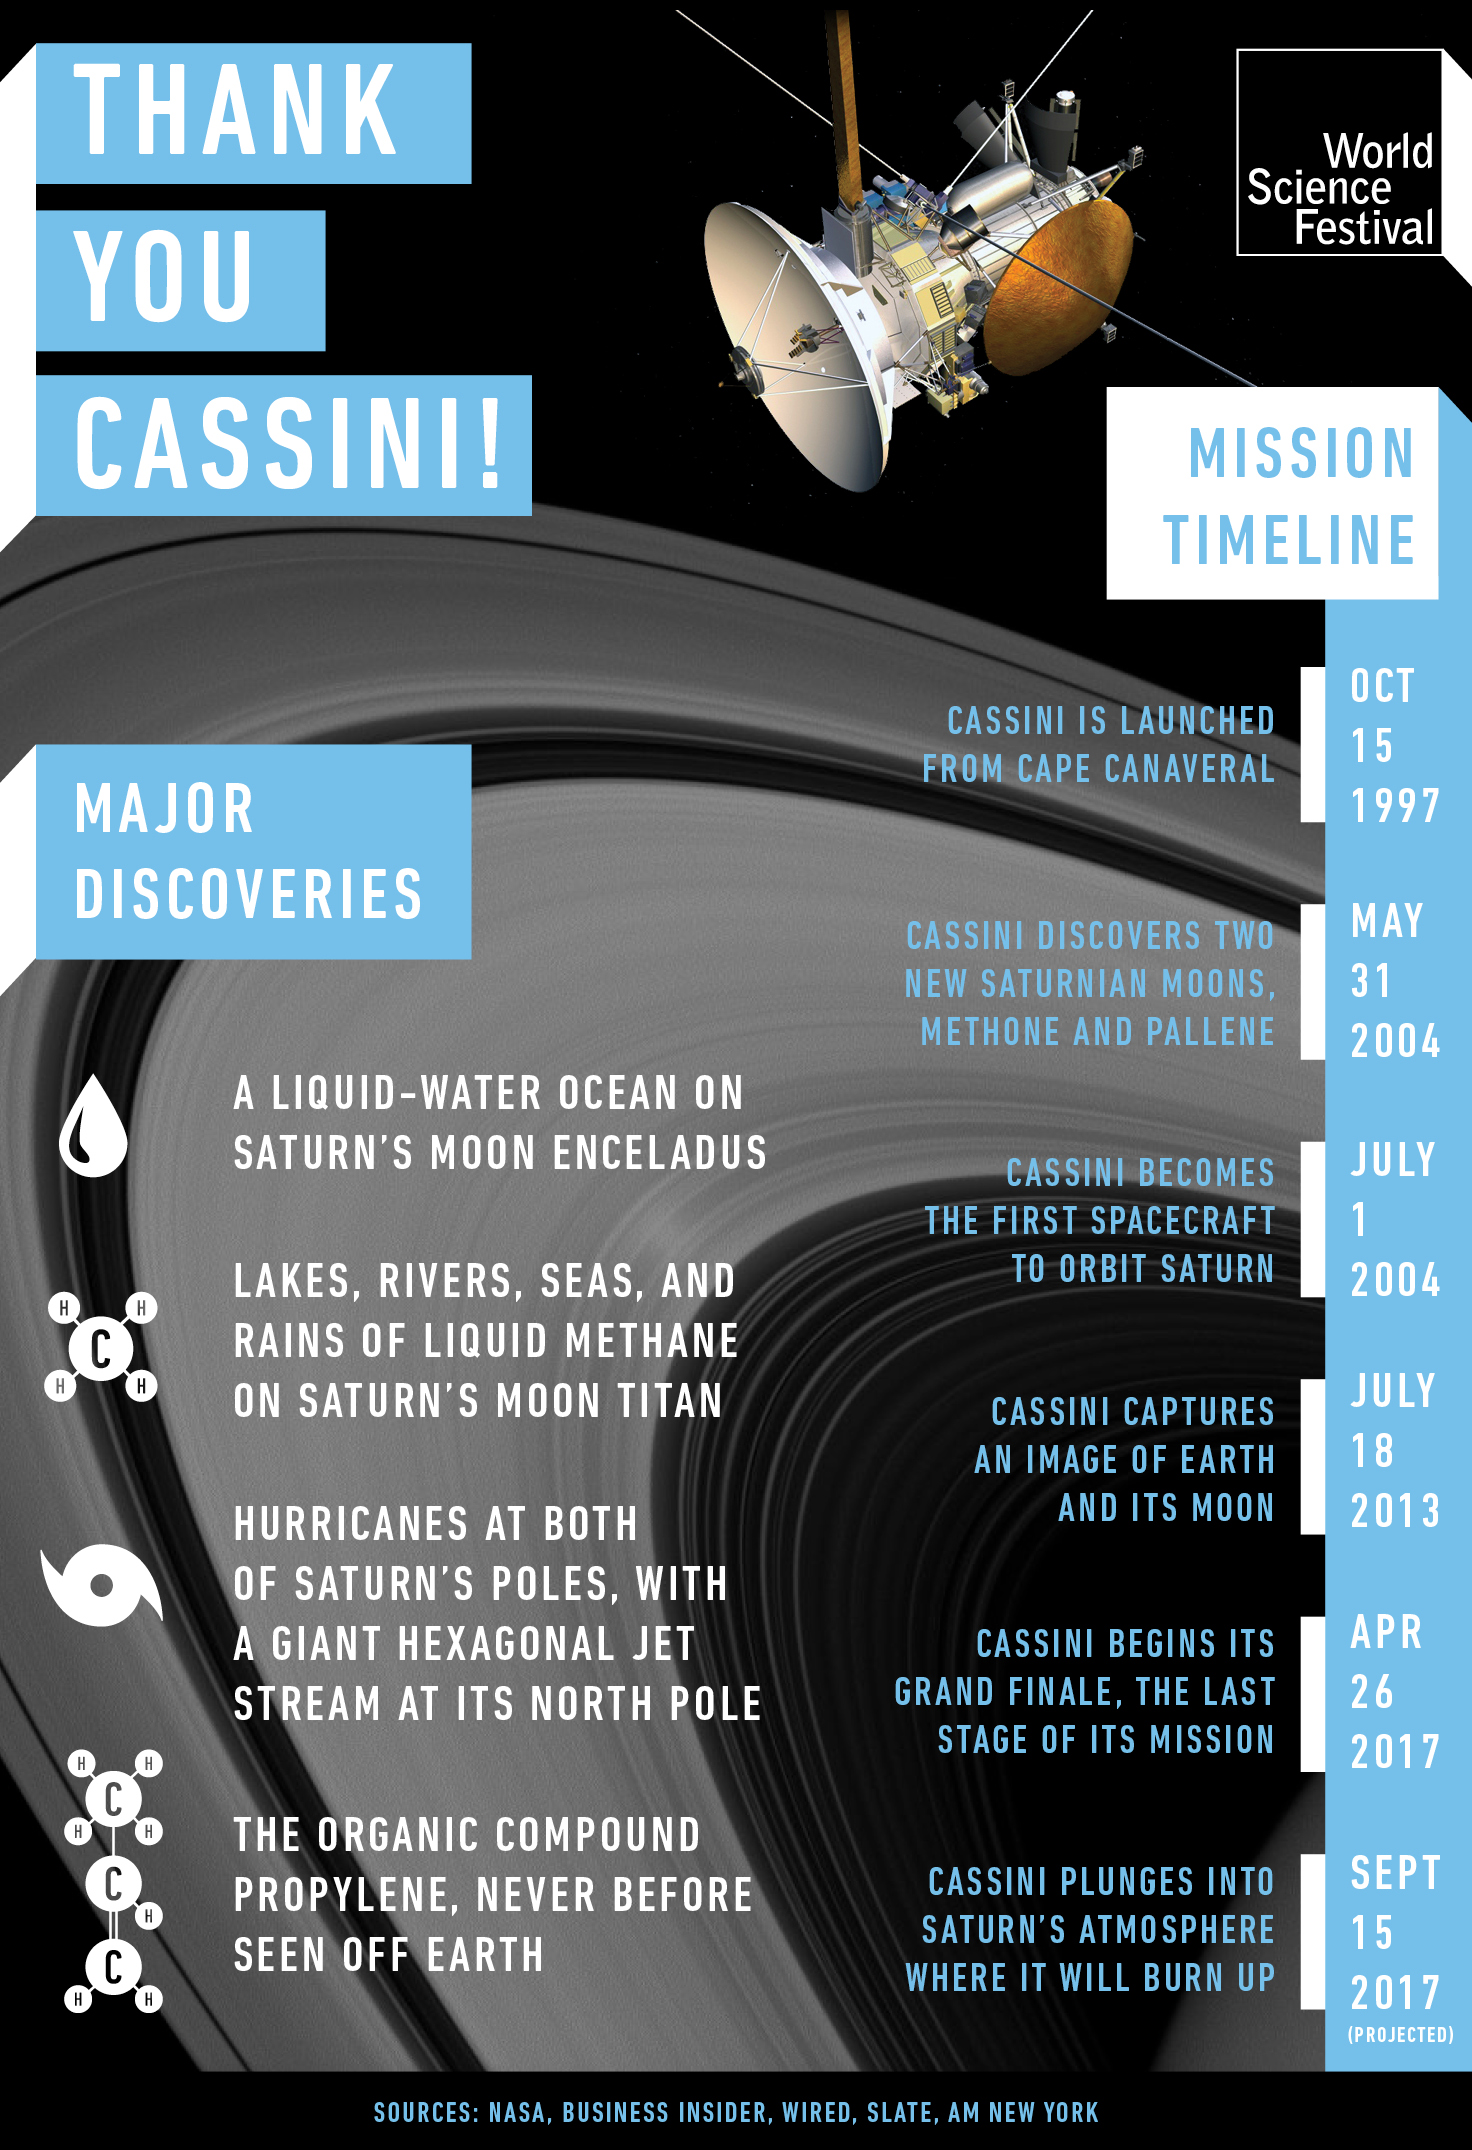 thank-you-cassini-1